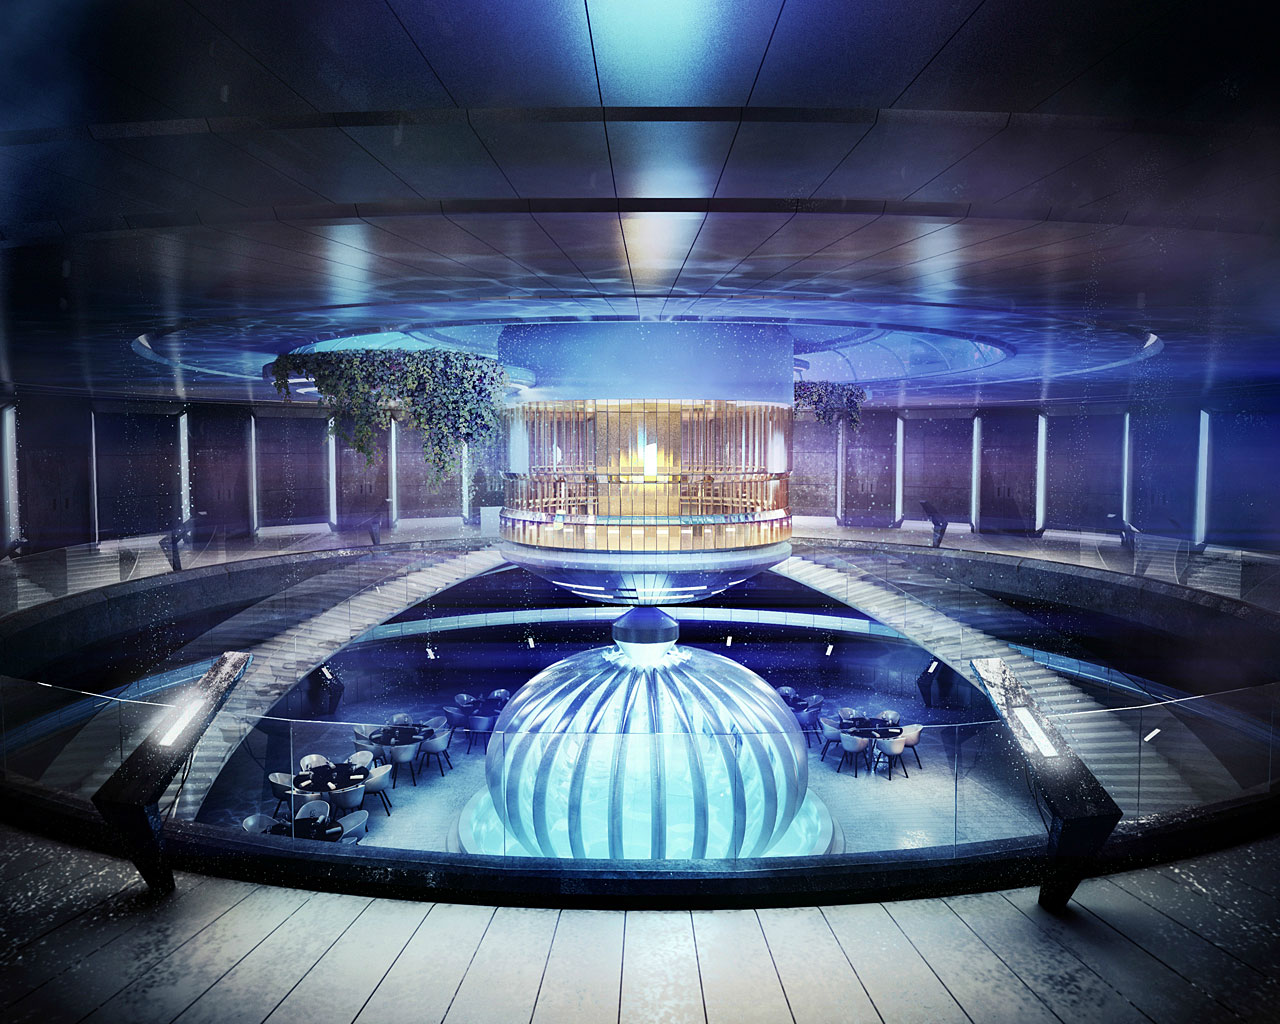 The Water Discus Underwater Hotel planned for Dubai (7)